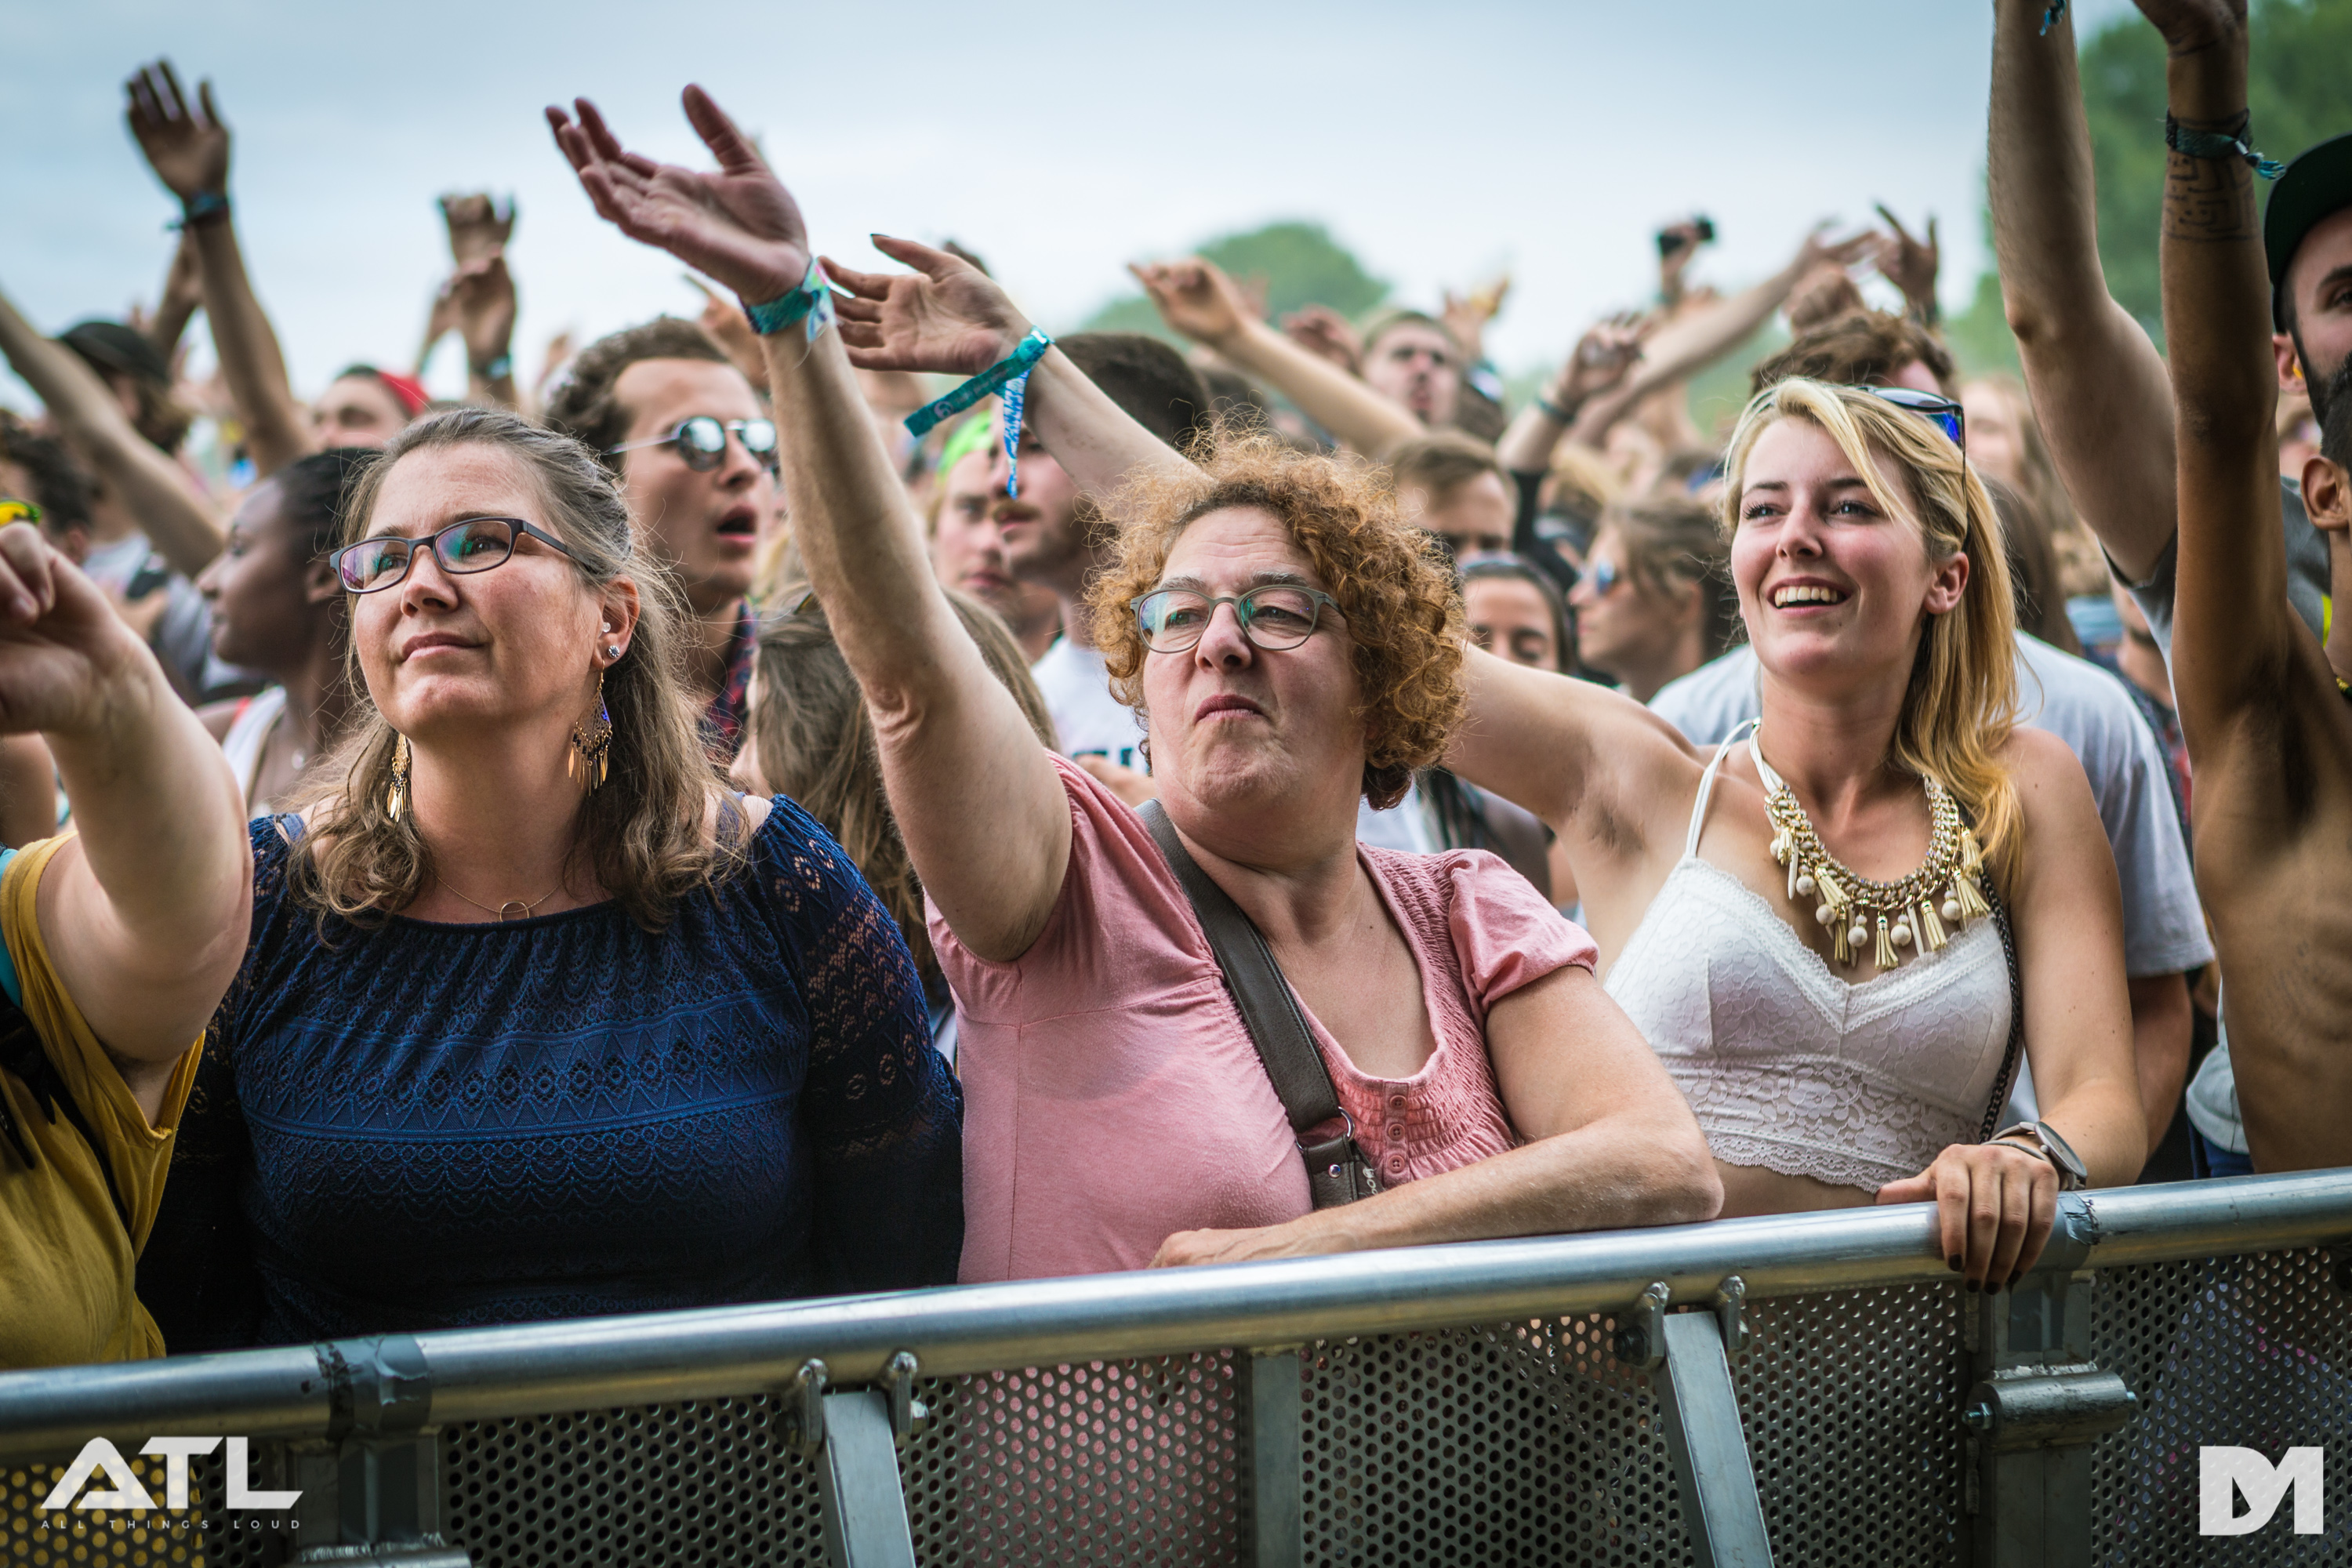 20170716_dour_crowd_atl_31